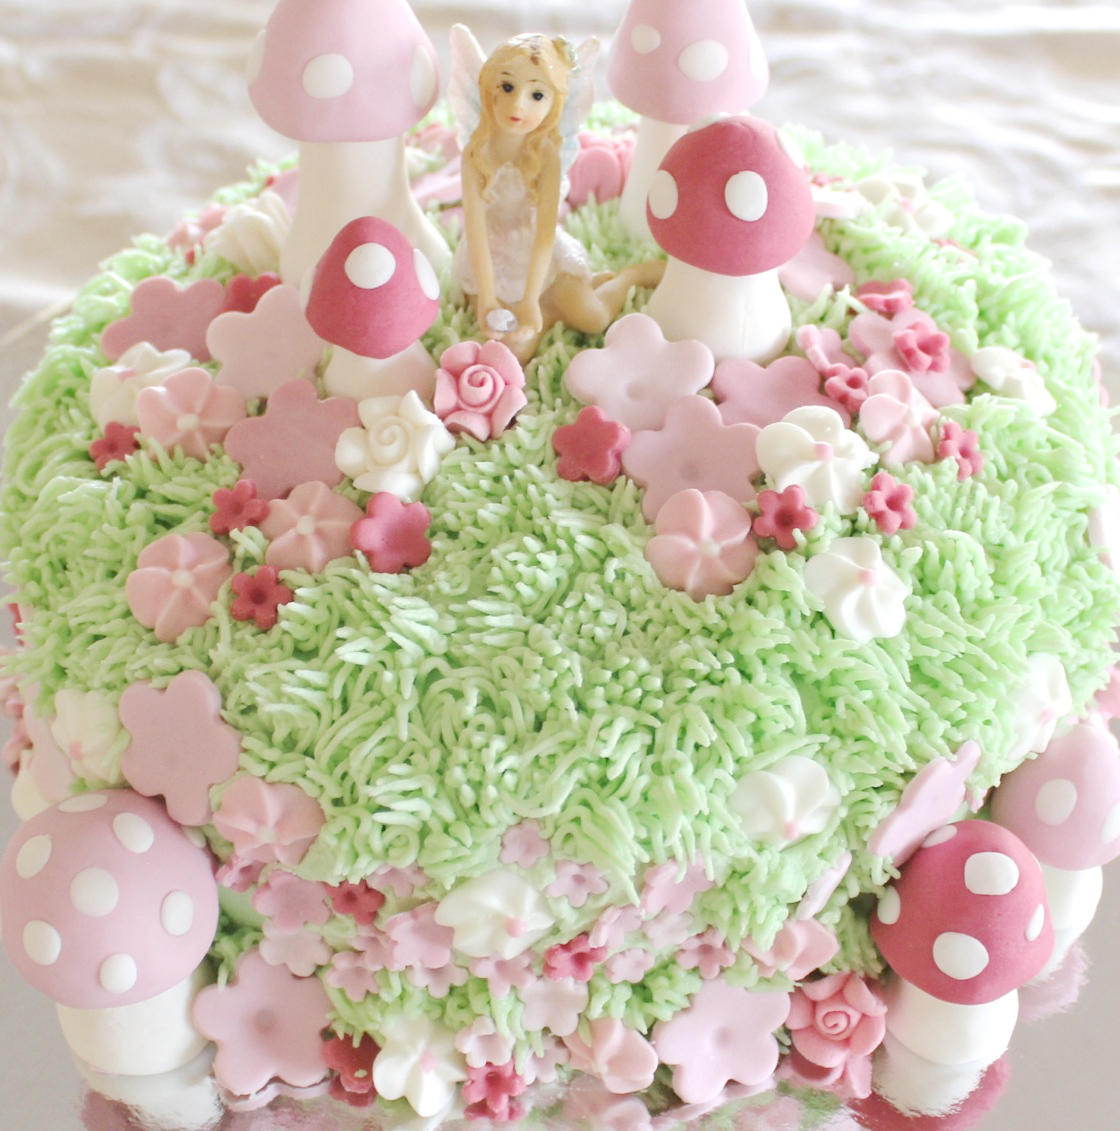 A fairy cake fit for a princess - by Molly and Mama